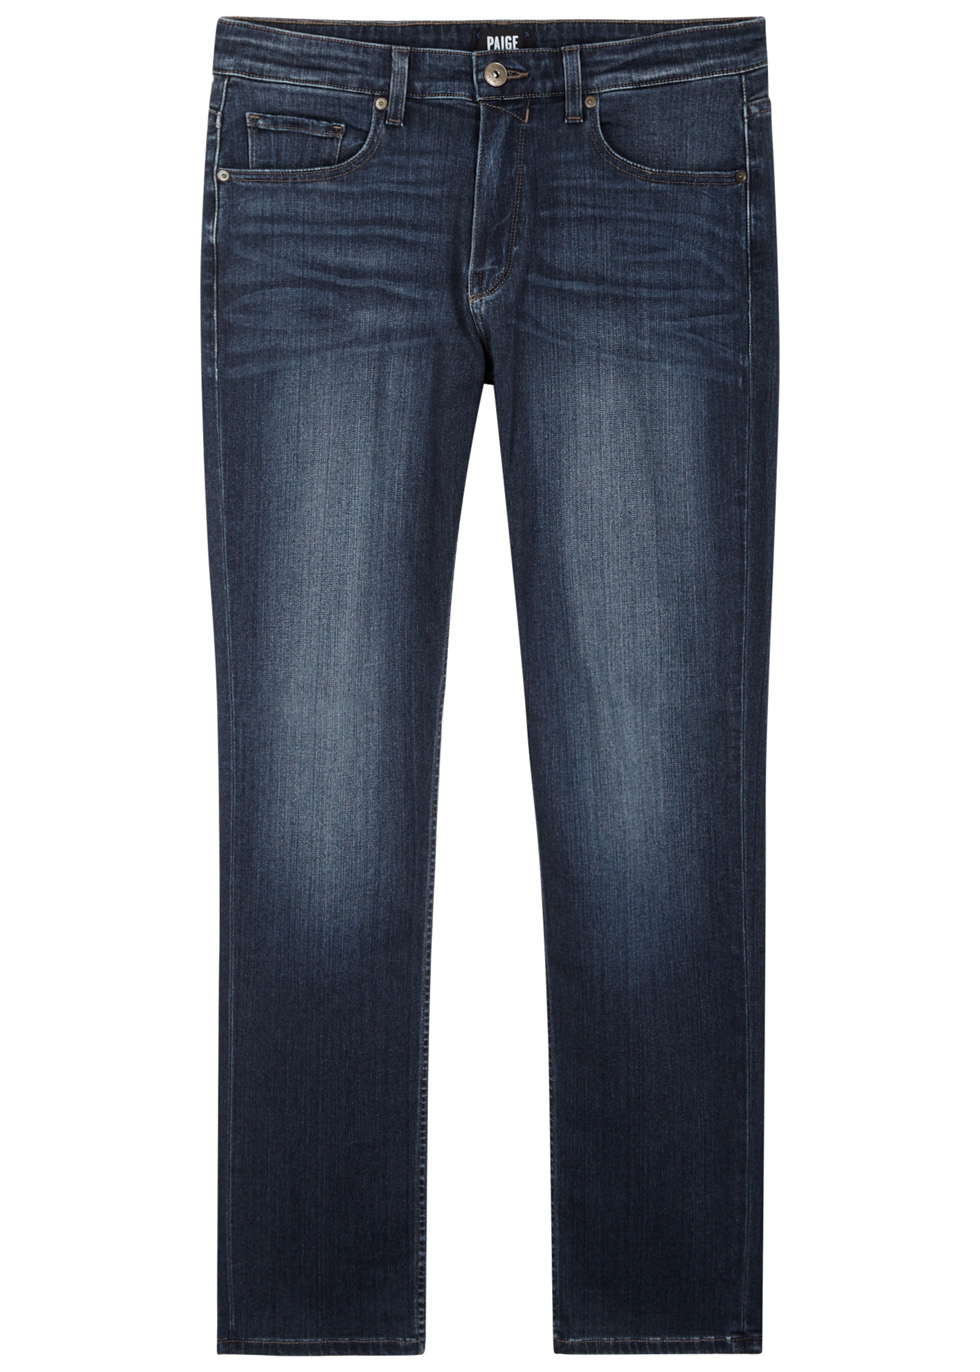 Federal blue straight-leg jeans - Paige